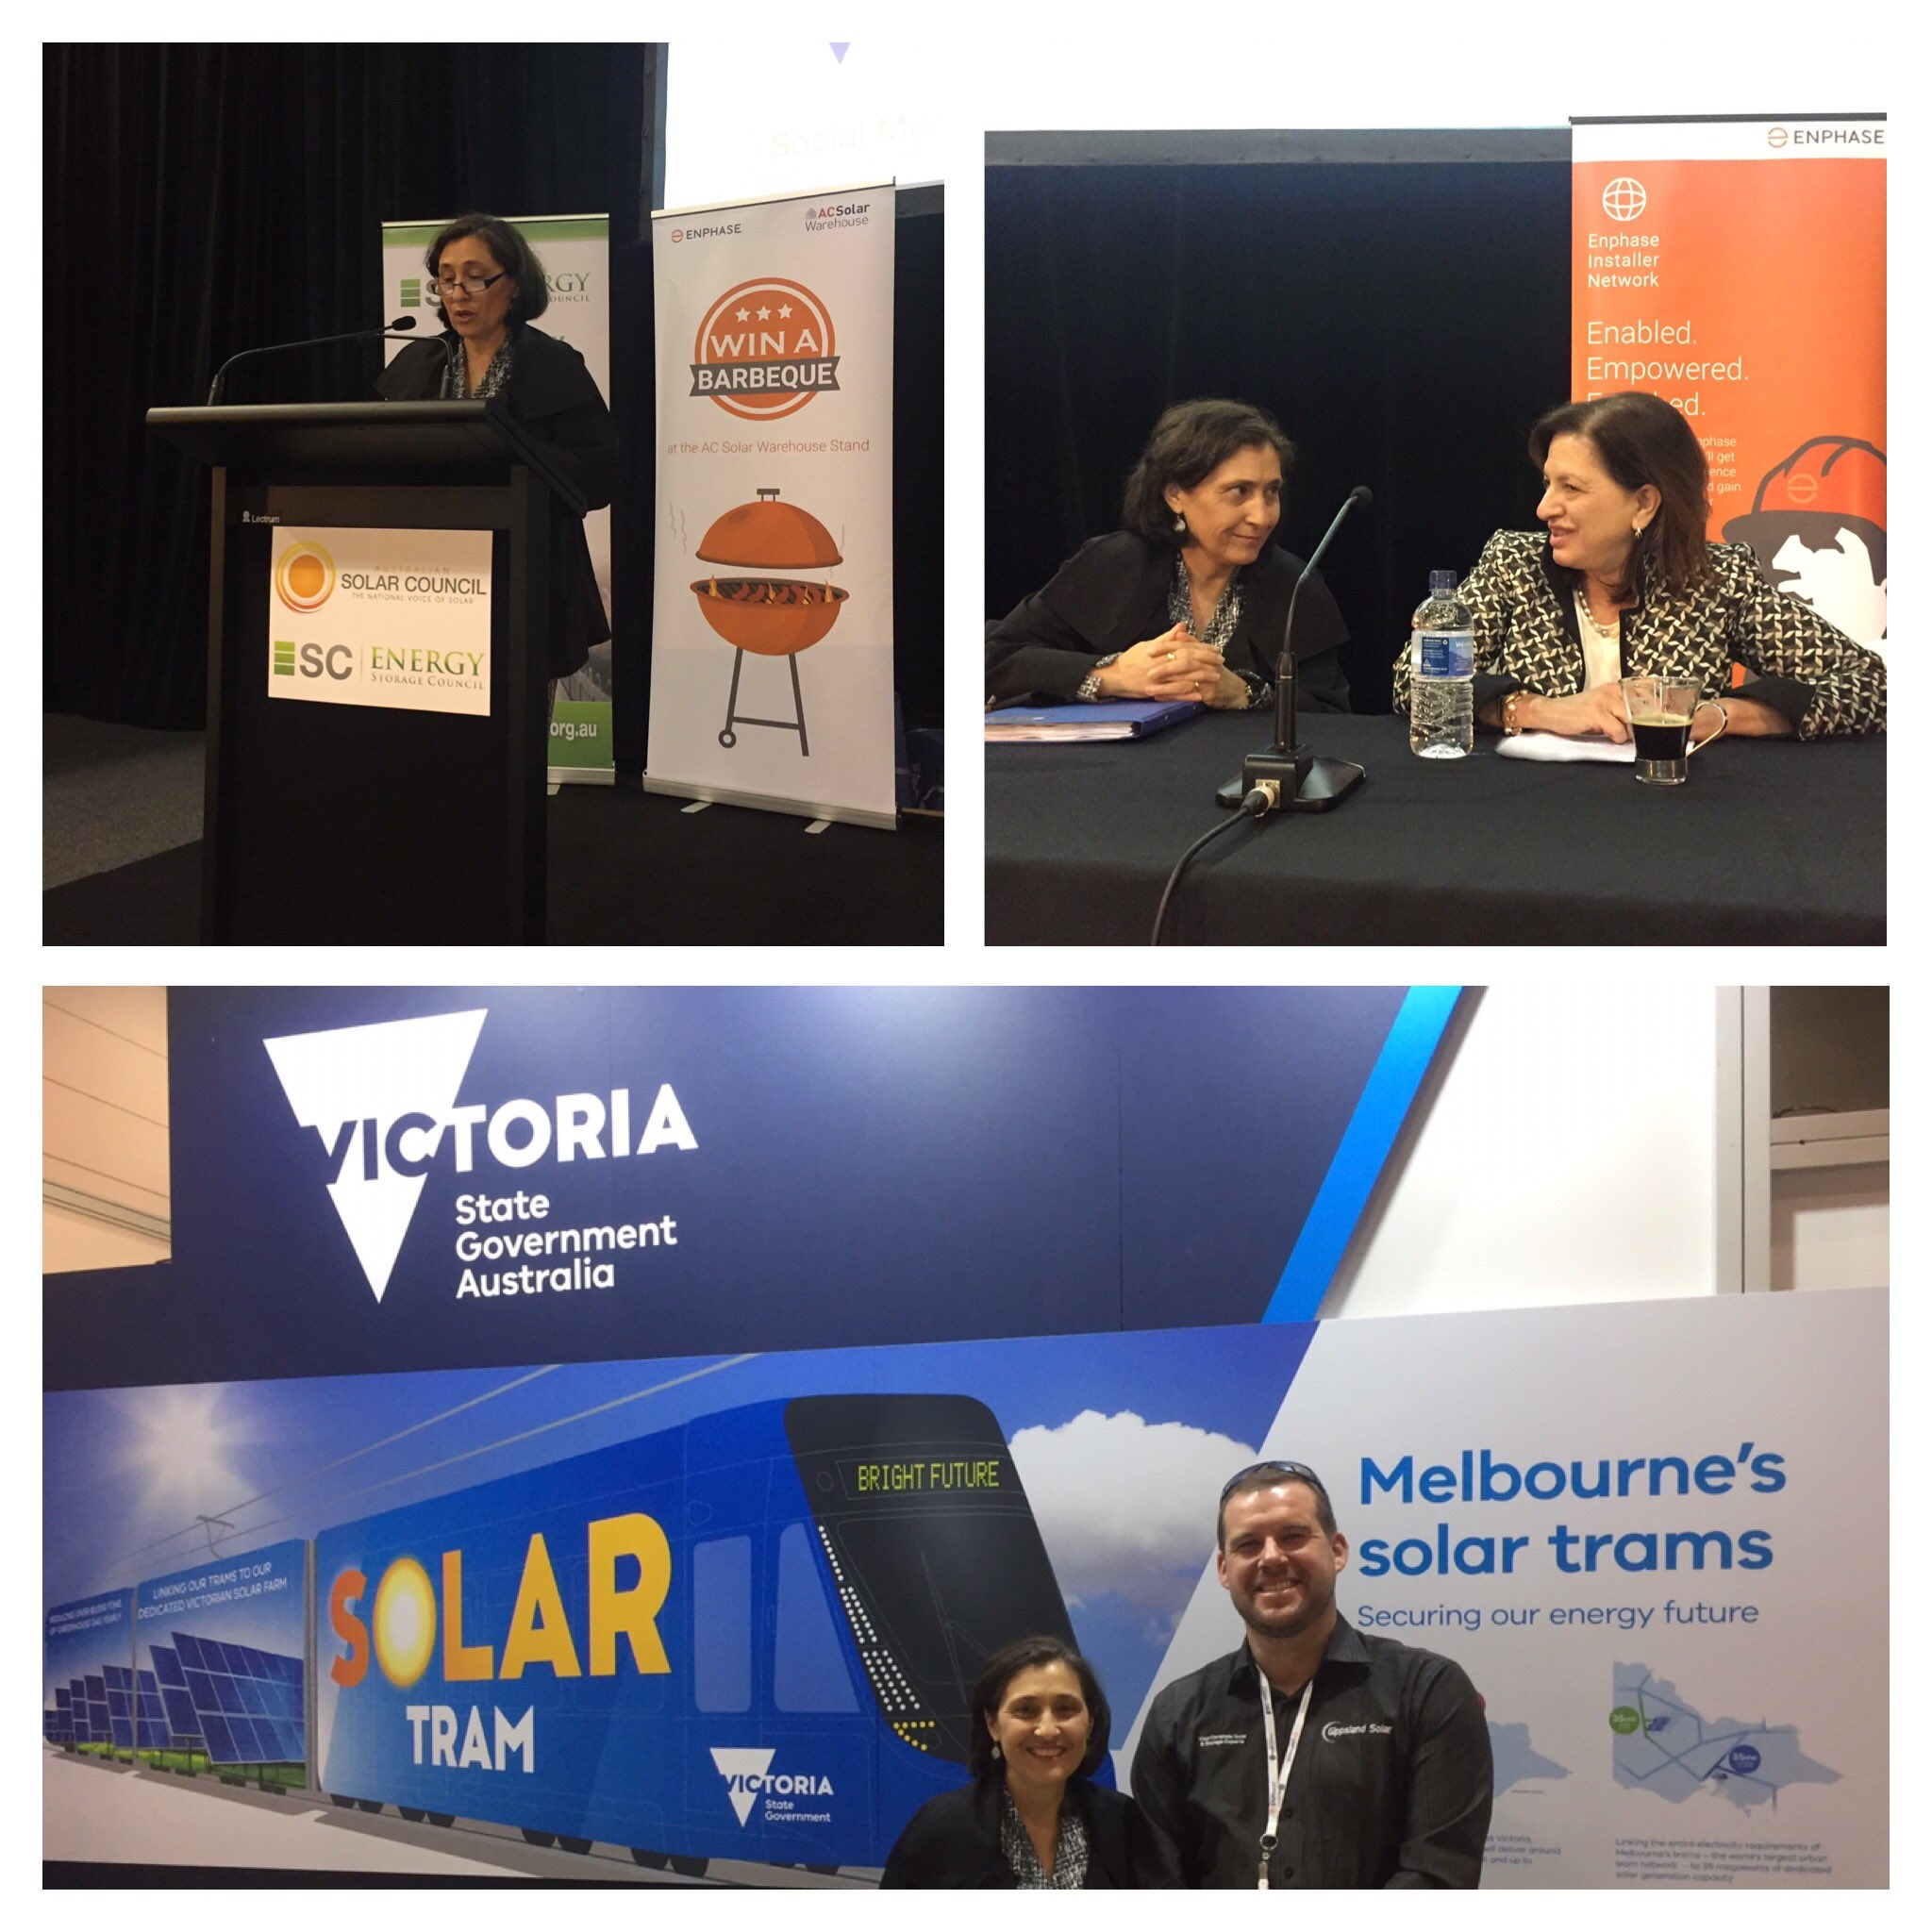 Speaking at #SolarStorage2017 on our vision for the future today. Great to see AEMO CEO Audrey Zibelman and @gippslandsolar #springst https://t.co/GVYr8JD5TN